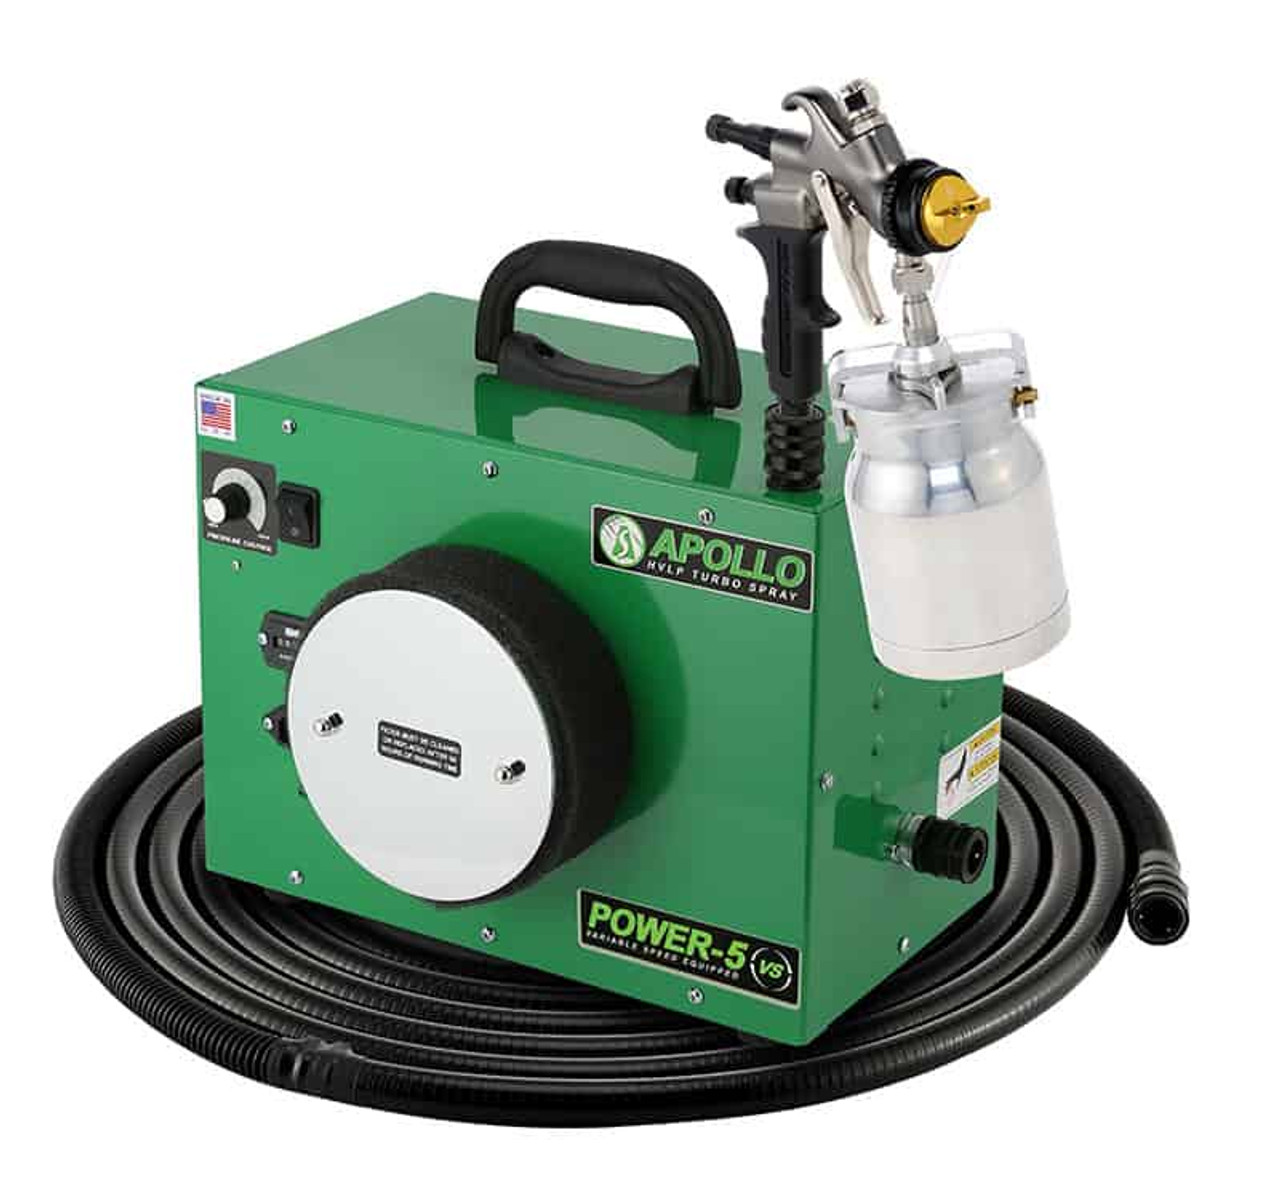 Apollo - 5-stage POWER 5 VS; 110 volt motor with 32' air flex hose and A7700QT spray gun and an A5251-NT Siphon Feed cup (5VS1107700QT)